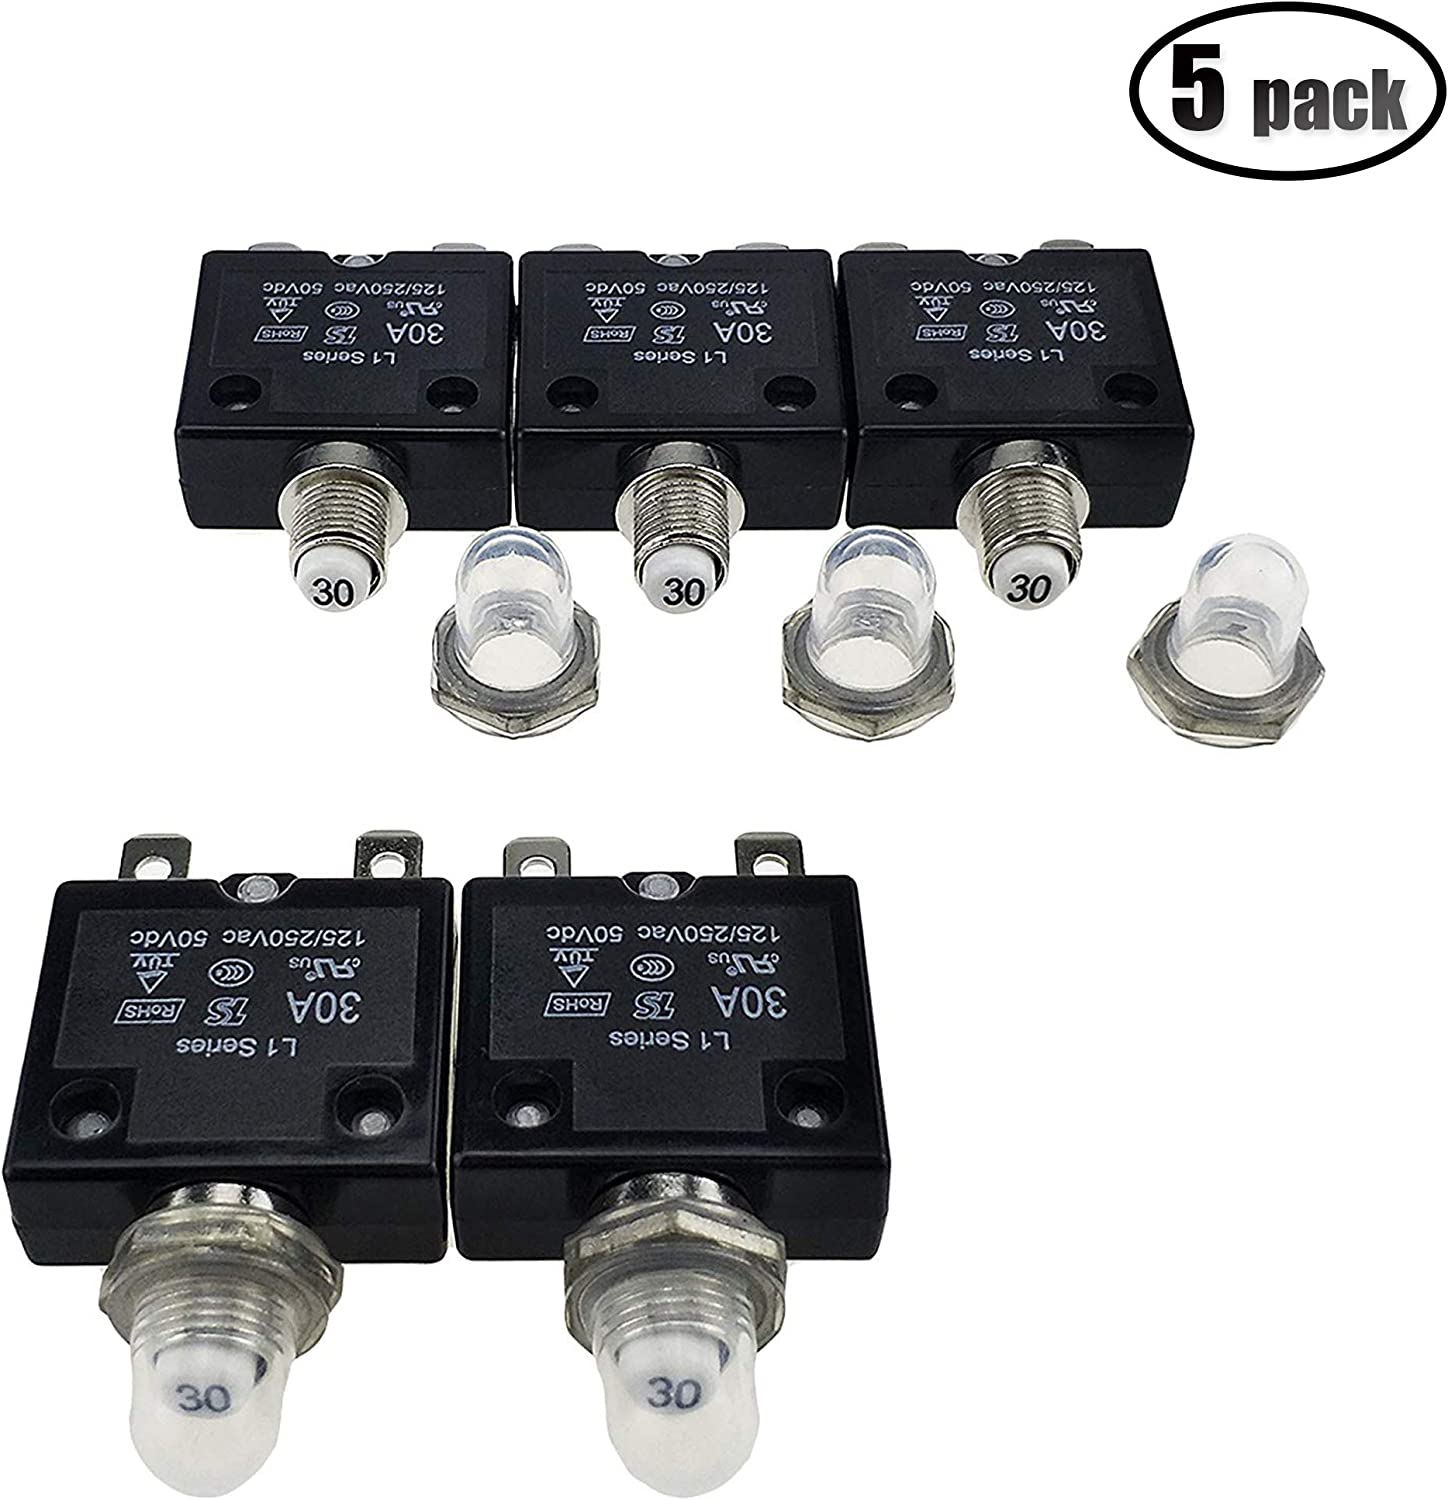 IZTOSS 5PCS 15Amp Circuit Breakers with manual reset Waterproof Button transparent Cover DC50V AC125-250V with Quick Connect Terminals